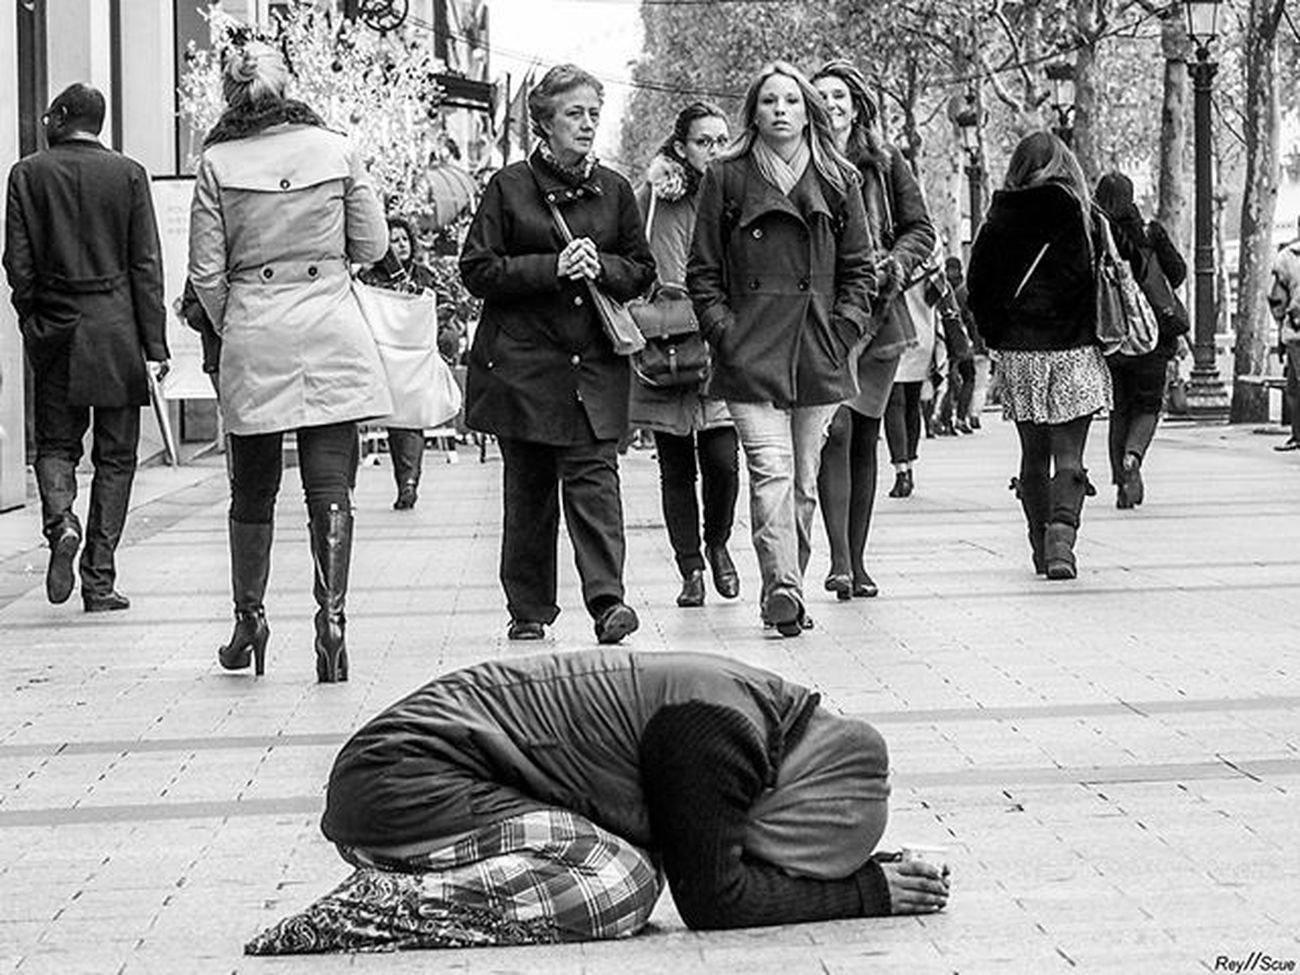 NePasOublierLesOubliés Paris France Real Realstreet Beststreets Bestpic Blackandwhite White Black Travel Artist Nonprofit Old Urban Social Documentary Homeless People Olympus Olympusomd Mft E -m1 Pictureoftheday Picoftheday Bestoftheday instagood photoof